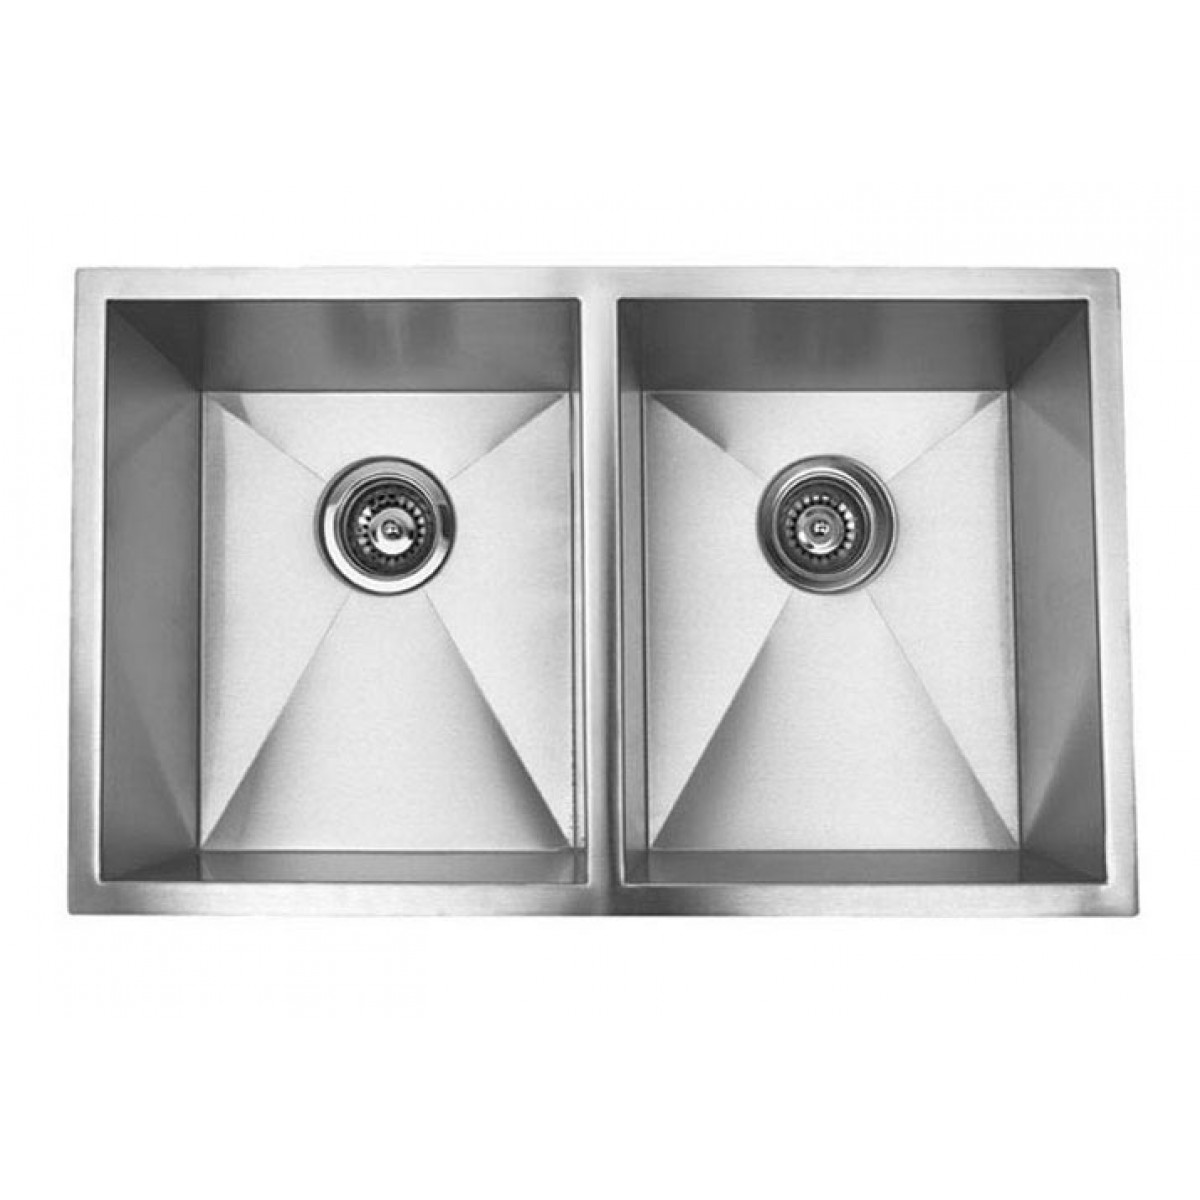 32 Inch Stainless Steel Undermount 50/50 Double Bowl Kitchen Sink ...